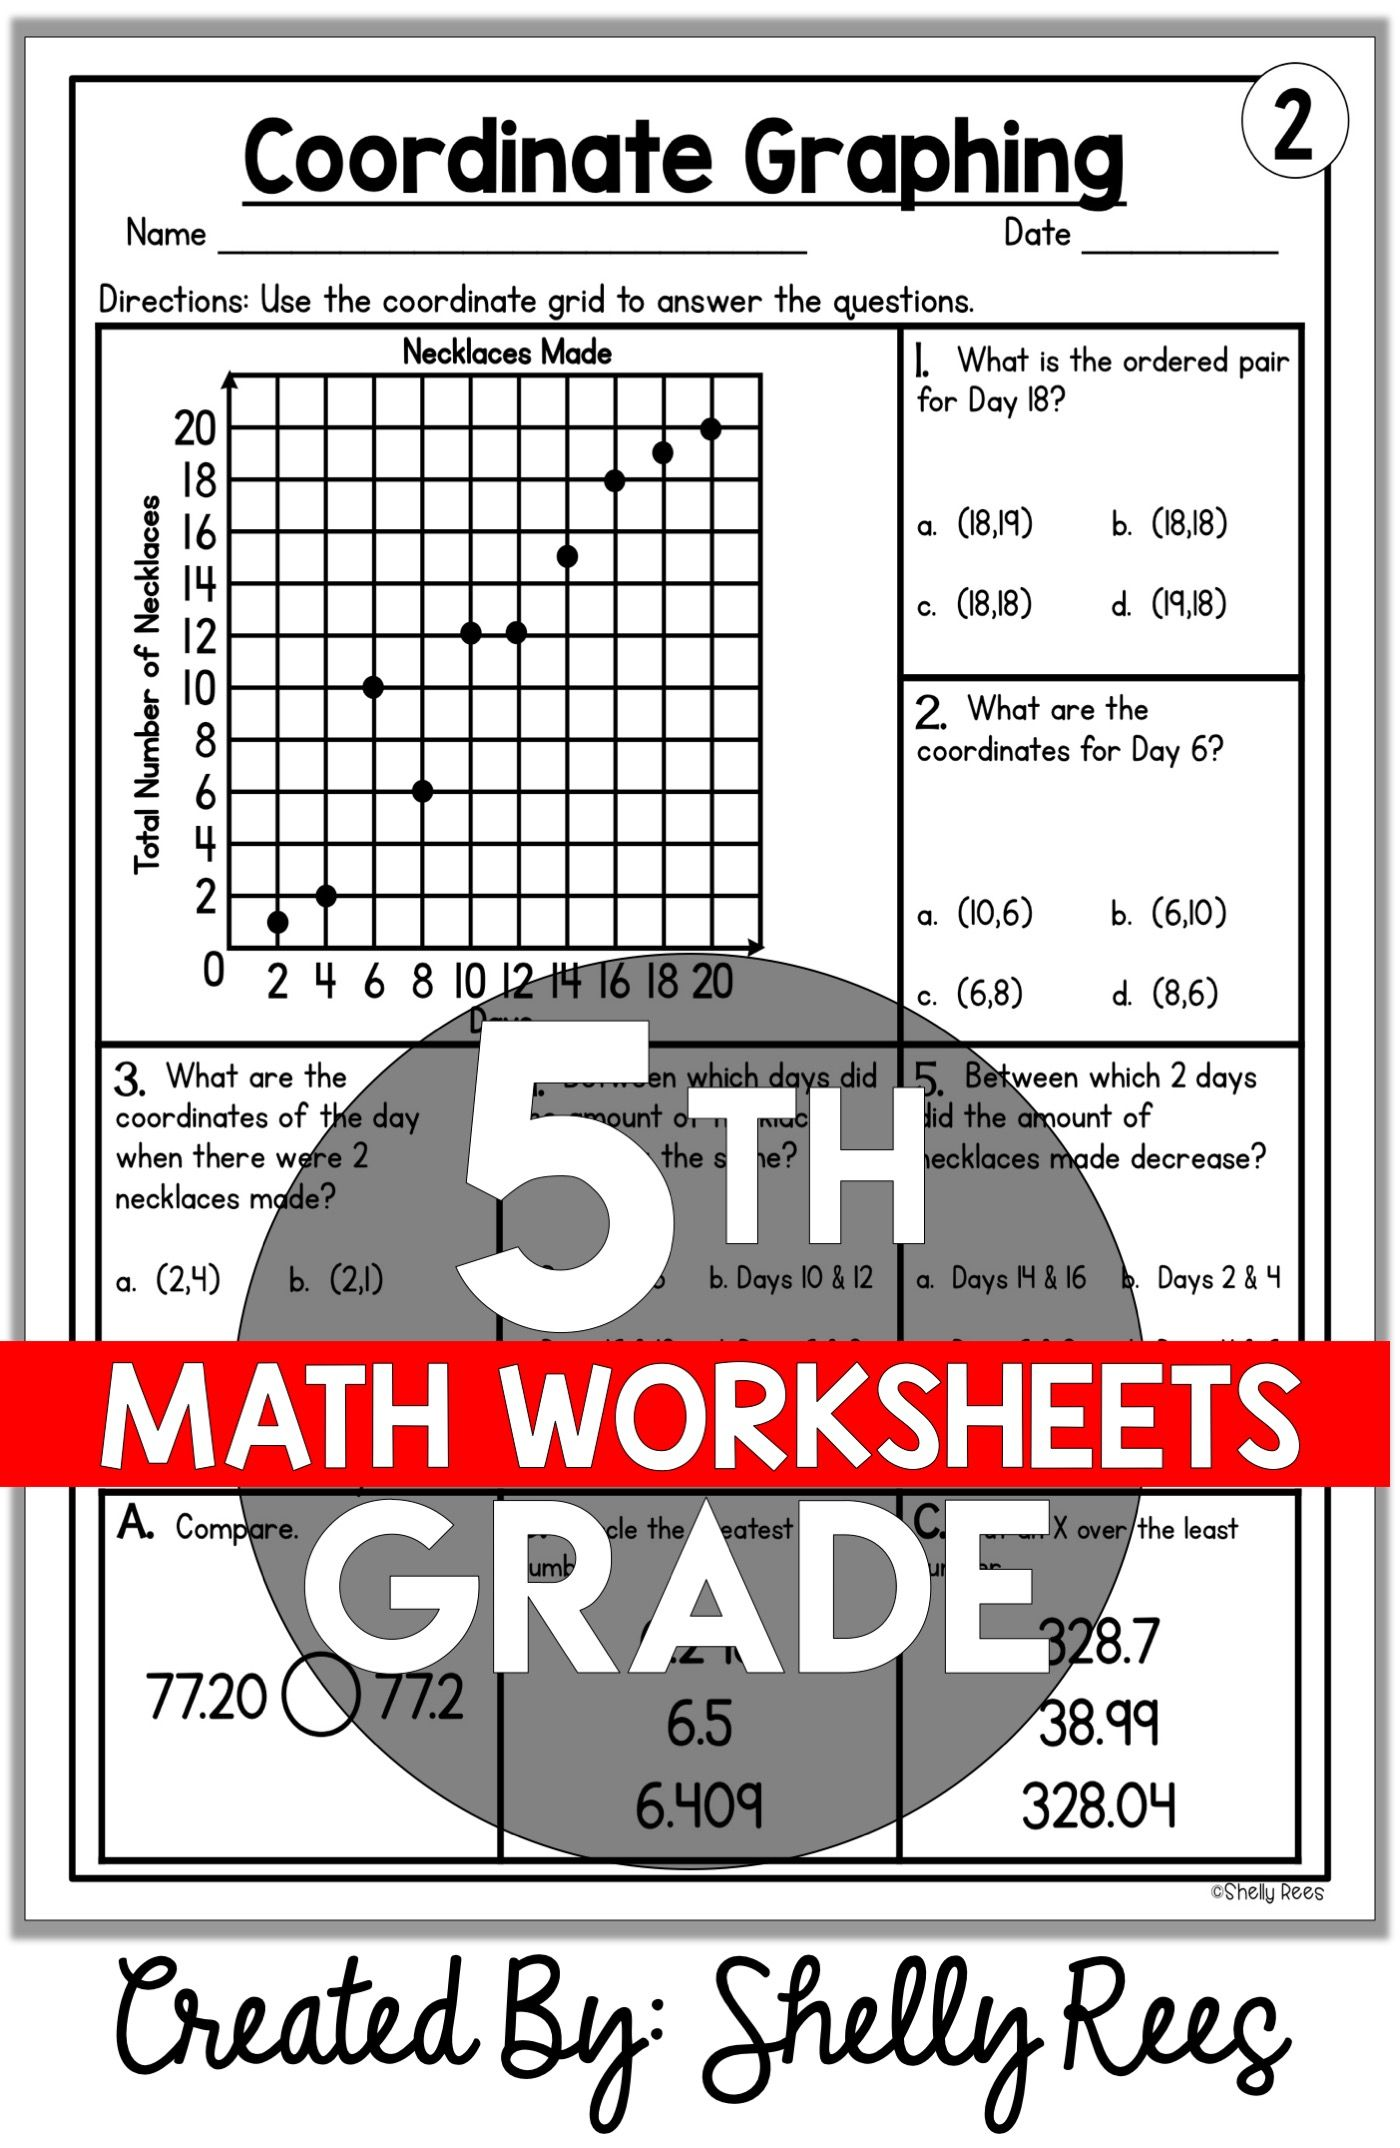 medium resolution of 5th Grade Math Worksheets Free and Printable - Appletastic Learning   Math  review worksheets